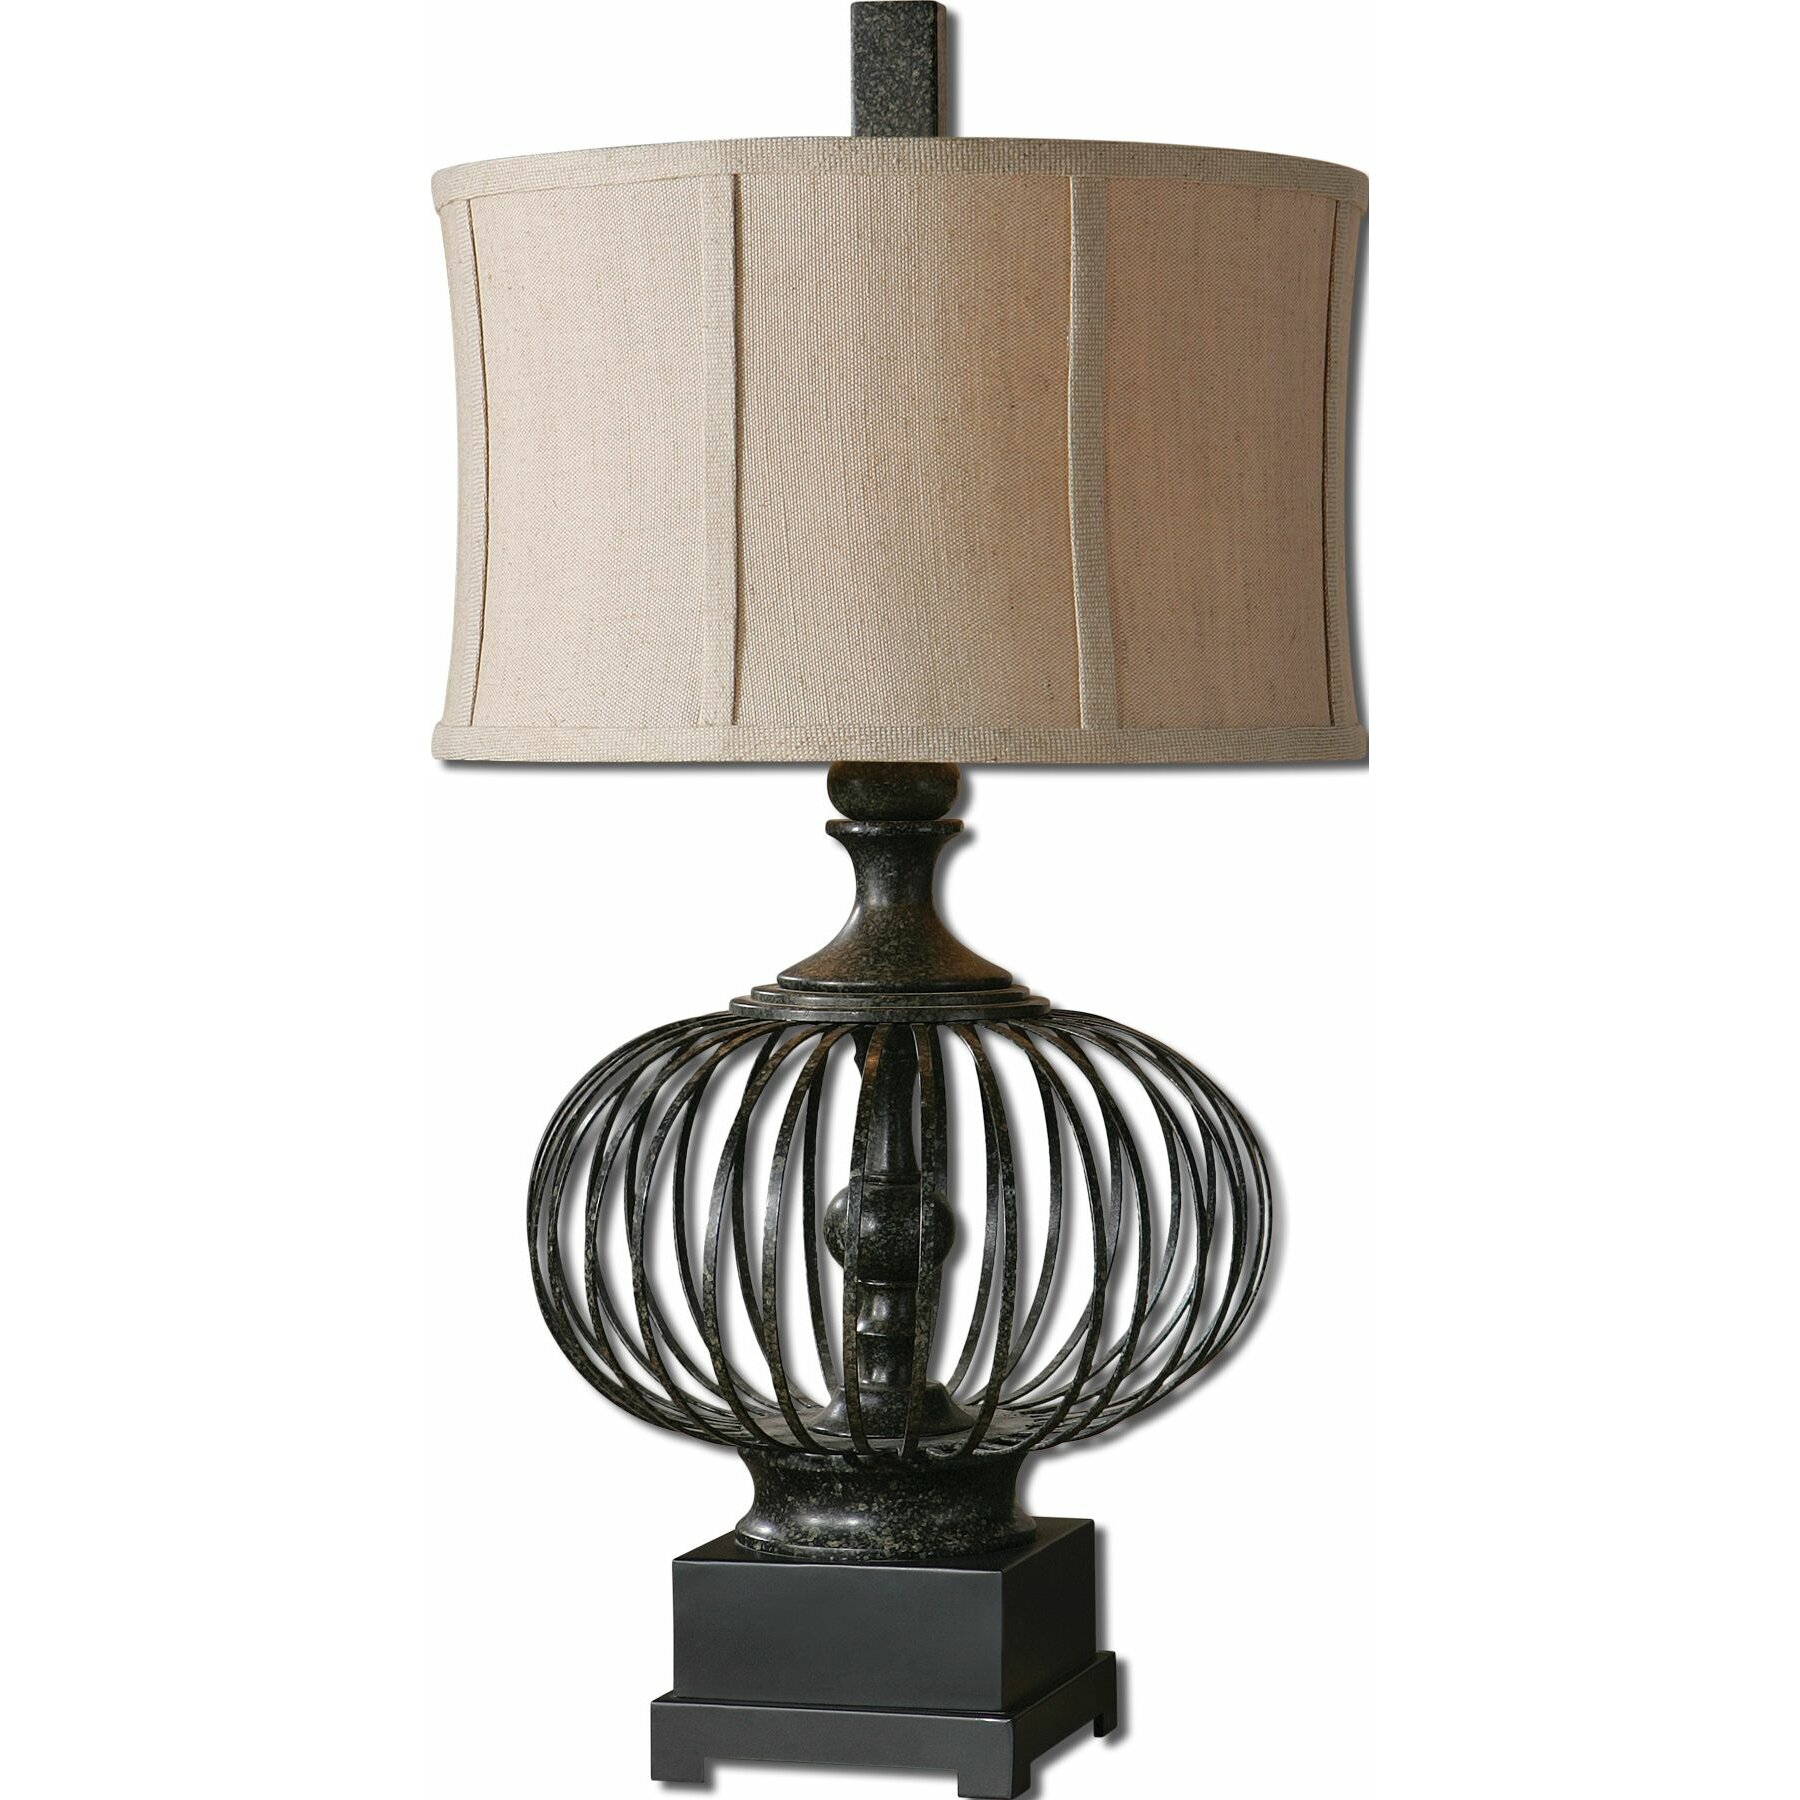 lighting lamps table lamps uttermost sku um11603. Black Bedroom Furniture Sets. Home Design Ideas